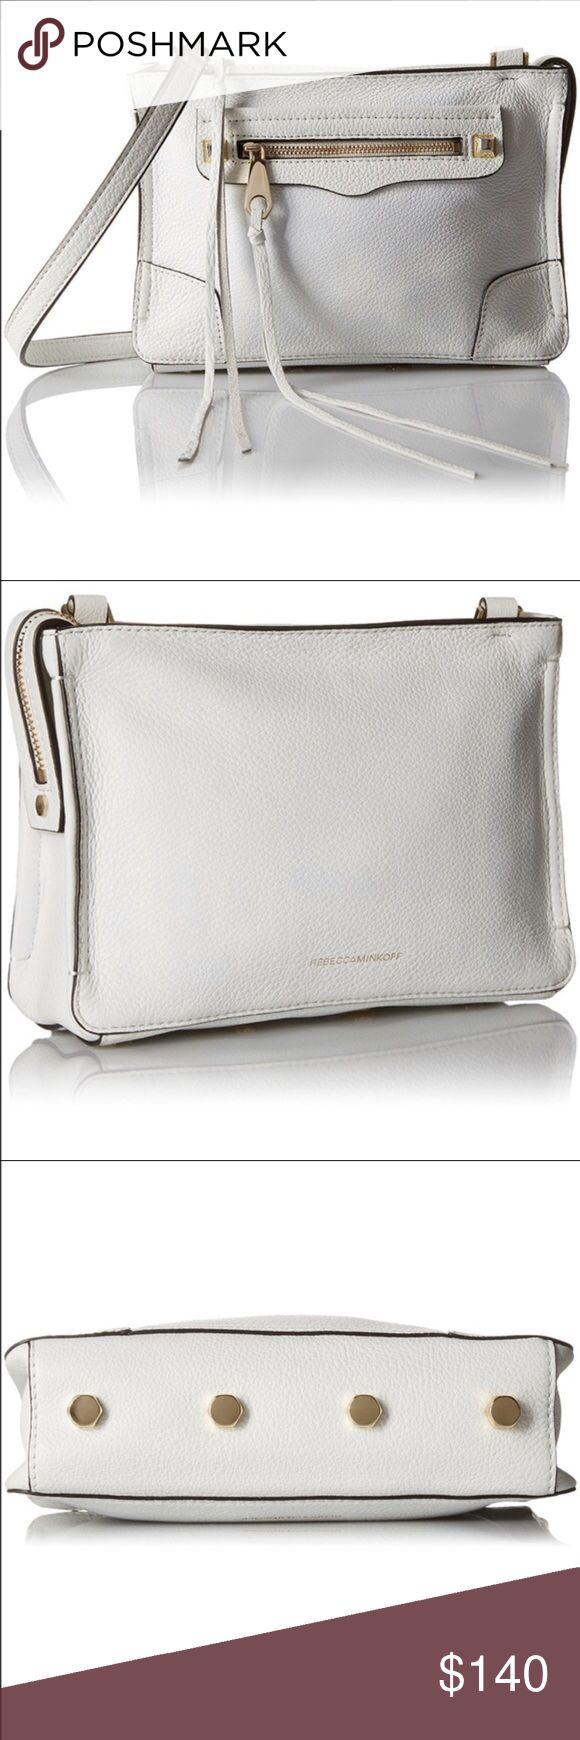 "Rebecca Minkoff Reagan Crossbody With moto-inspired styling and a streamlined silhouette, this Rebecca Minkoff crossbody is a cool pick for all your off-duty events, from date night to weekend errands.  Leather Imported Detachable adjustable crossbody strap Top zip closure; lined Exterior zip pocket, interior slip pocket Protective metal feet 9""W x 2""D x 6.5""H; 22"" to 26"" strap drop Rebecca Minkoff Bags Crossbody Bags"